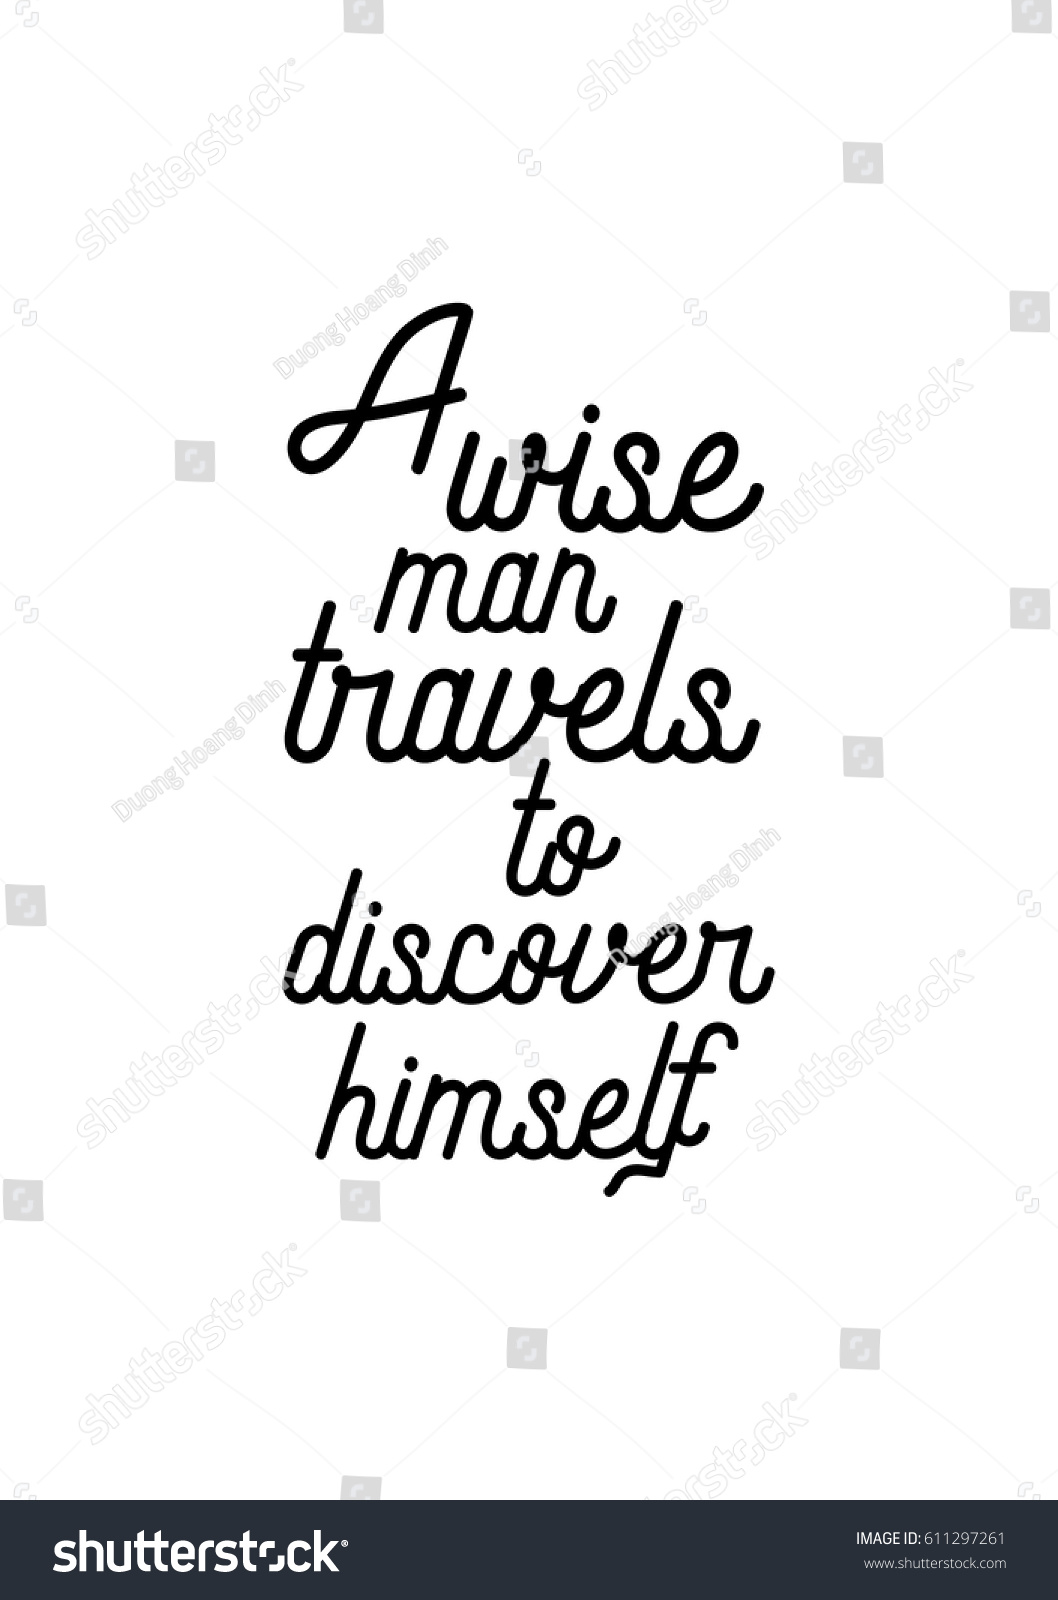 Travel Life Style Inspiration Quotes Lettering. Motivational Quote  Calligraphy. A Wise Man Travels To